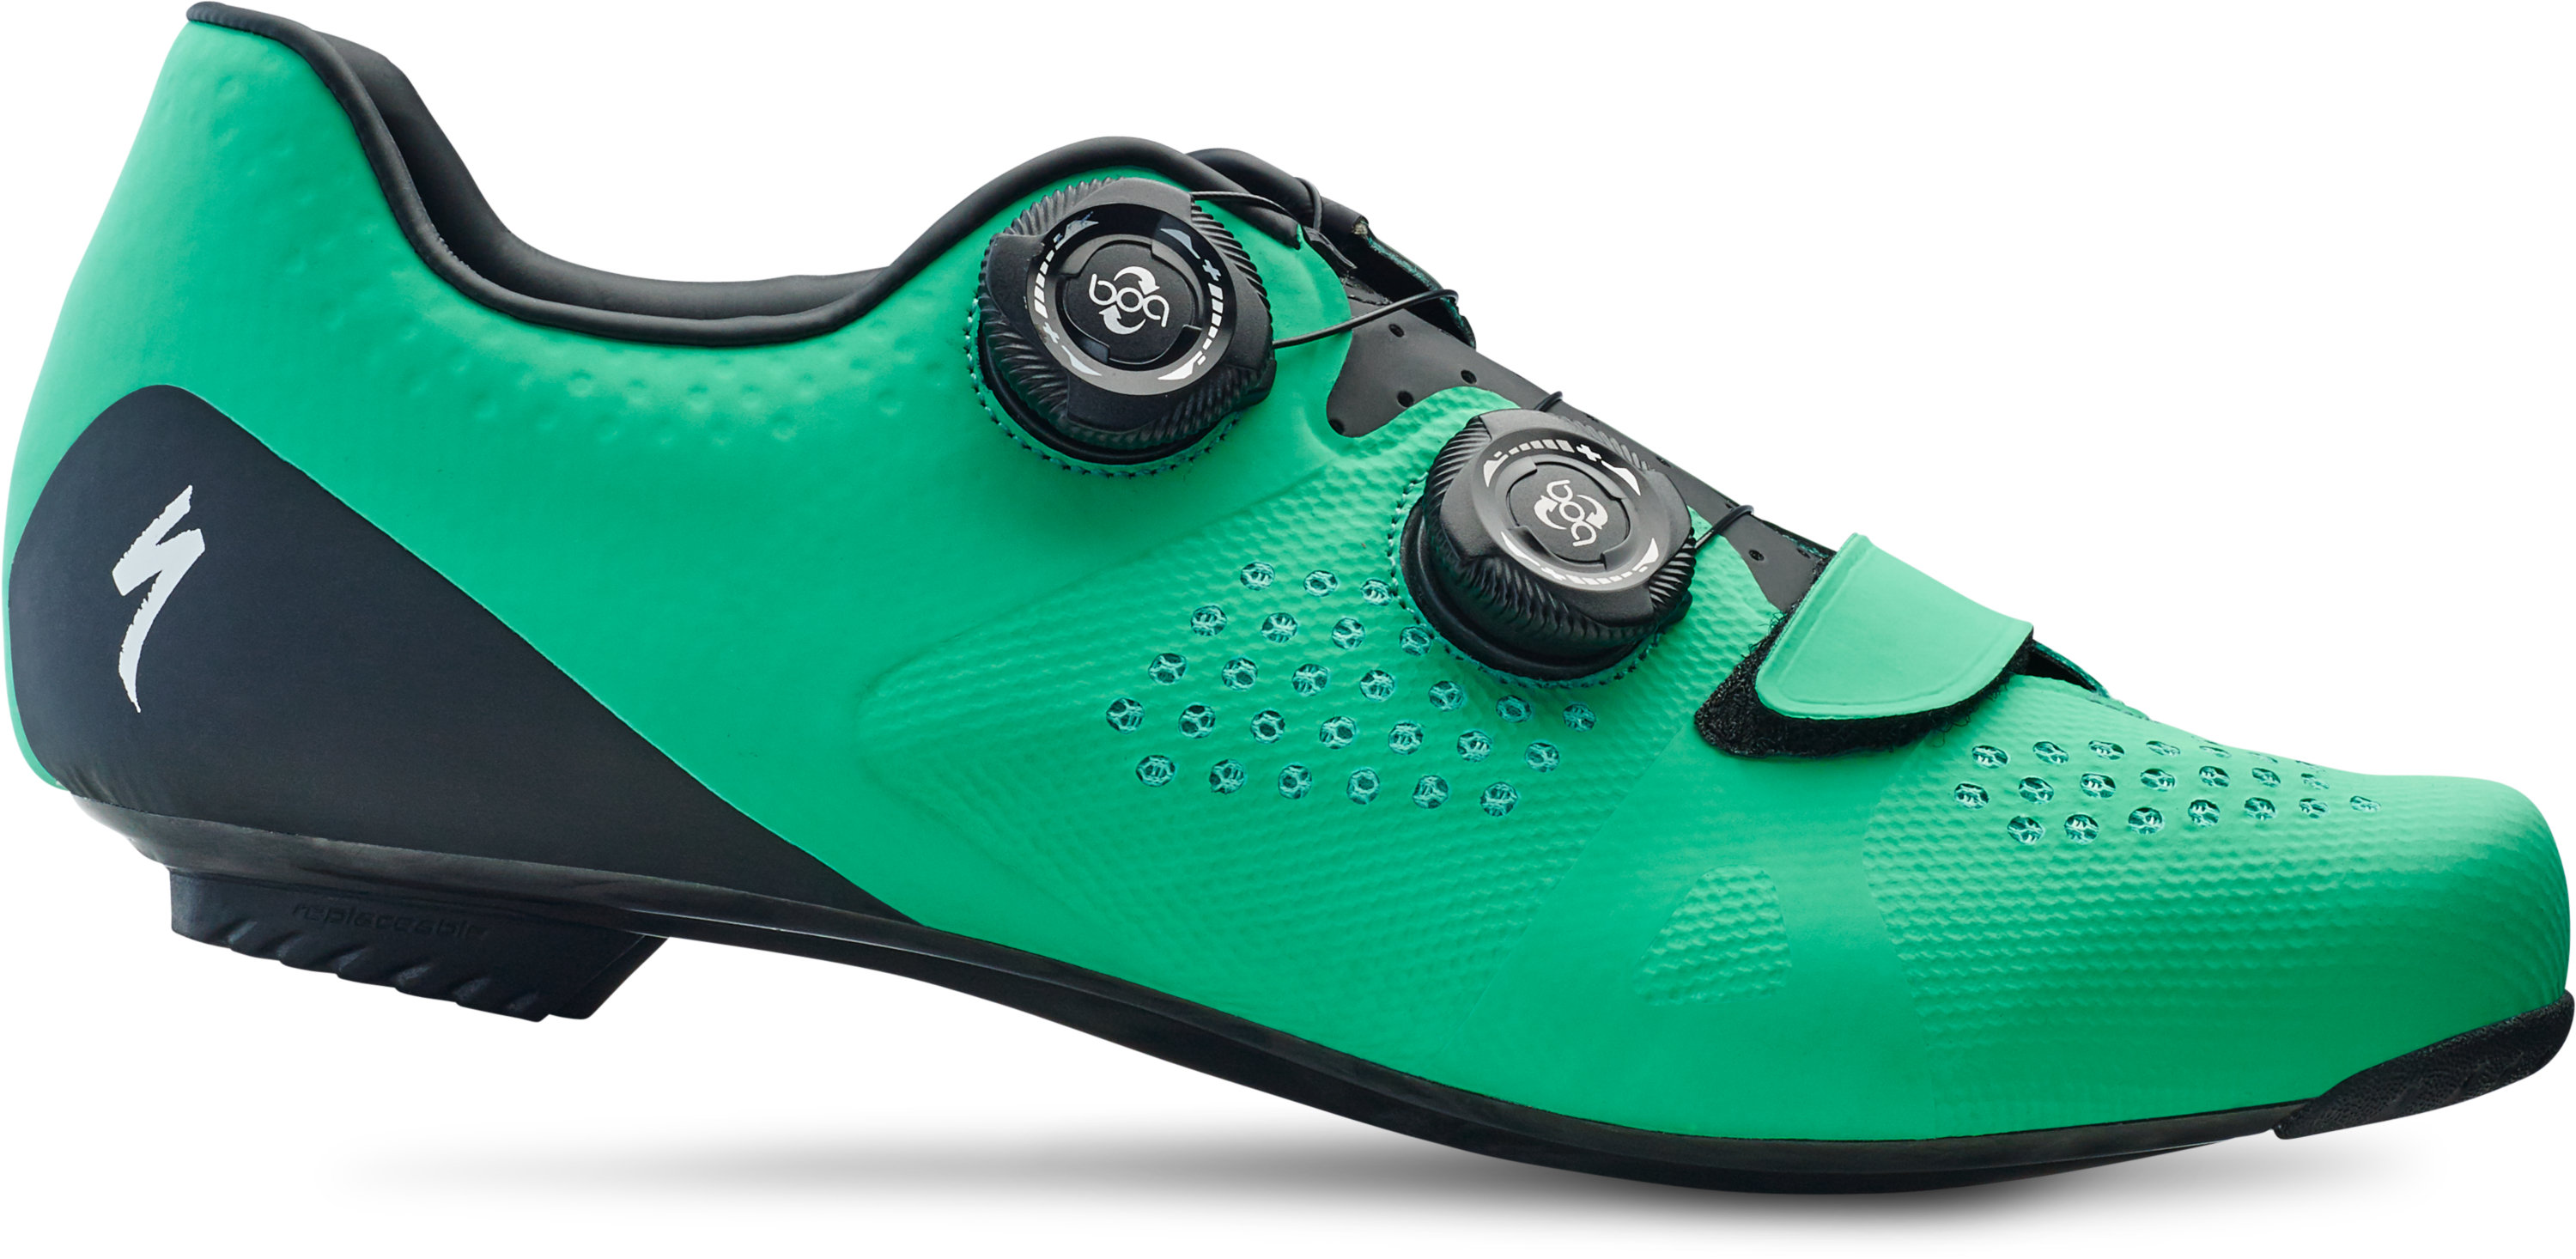 08576a8e720 Women's Torch 3.0 Road Shoes | Specialized.com